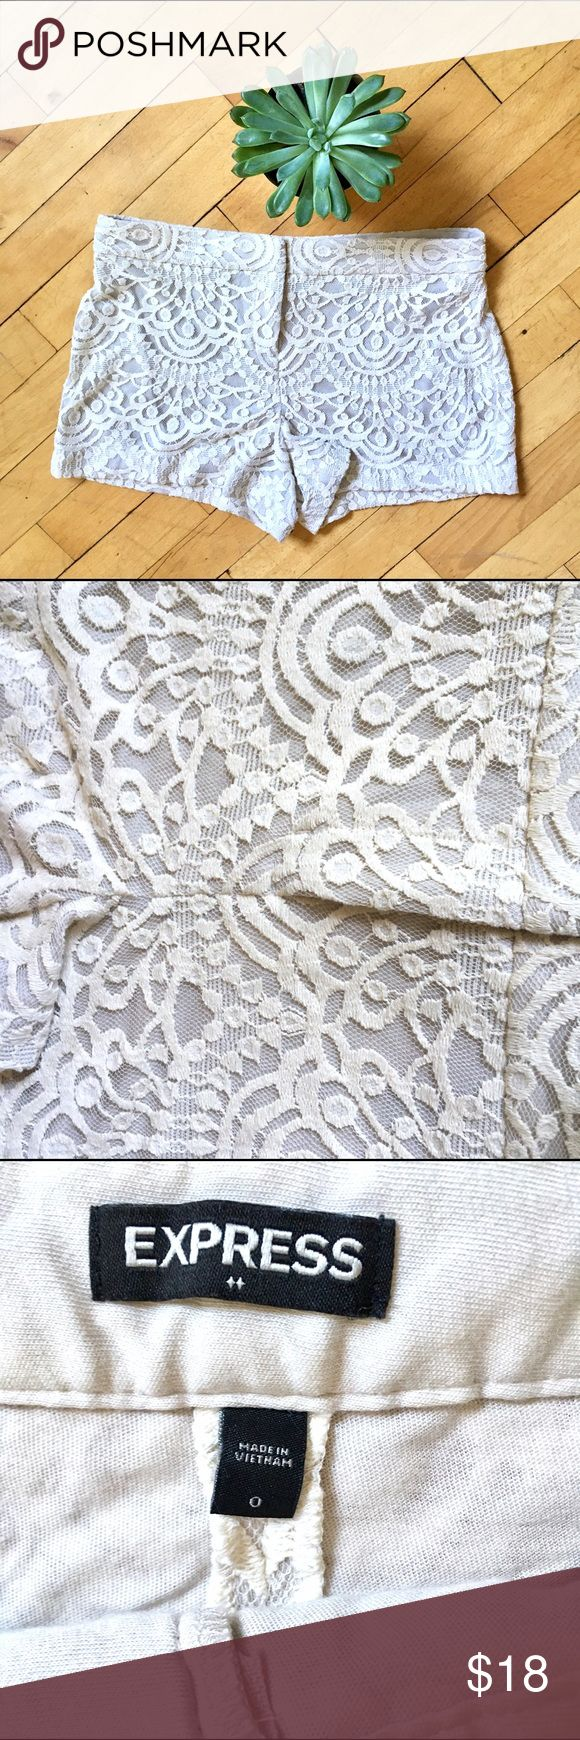 Express Crochet Lace Shorts Beautiful light cream Lace cream colored shorts from Express. Smooth fit with no pockets. Lined. Gently used and slightly faded but otherwise great condition. Can be dressed up or down! Size 0. Express Shorts